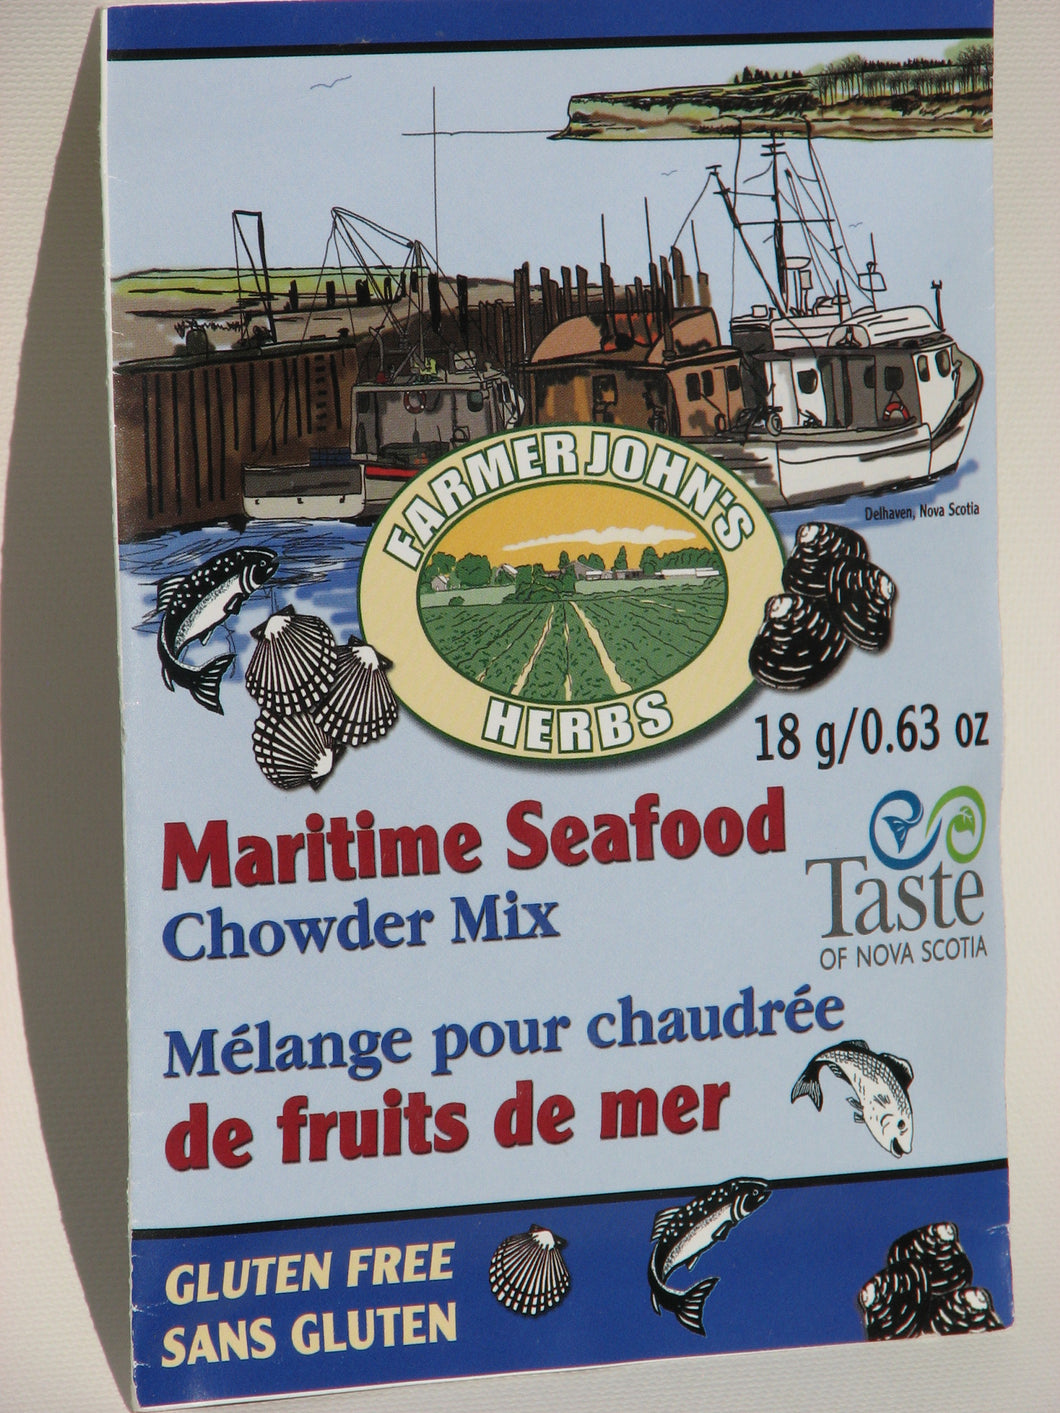 Chowder Mixes:  Maritime Seafood